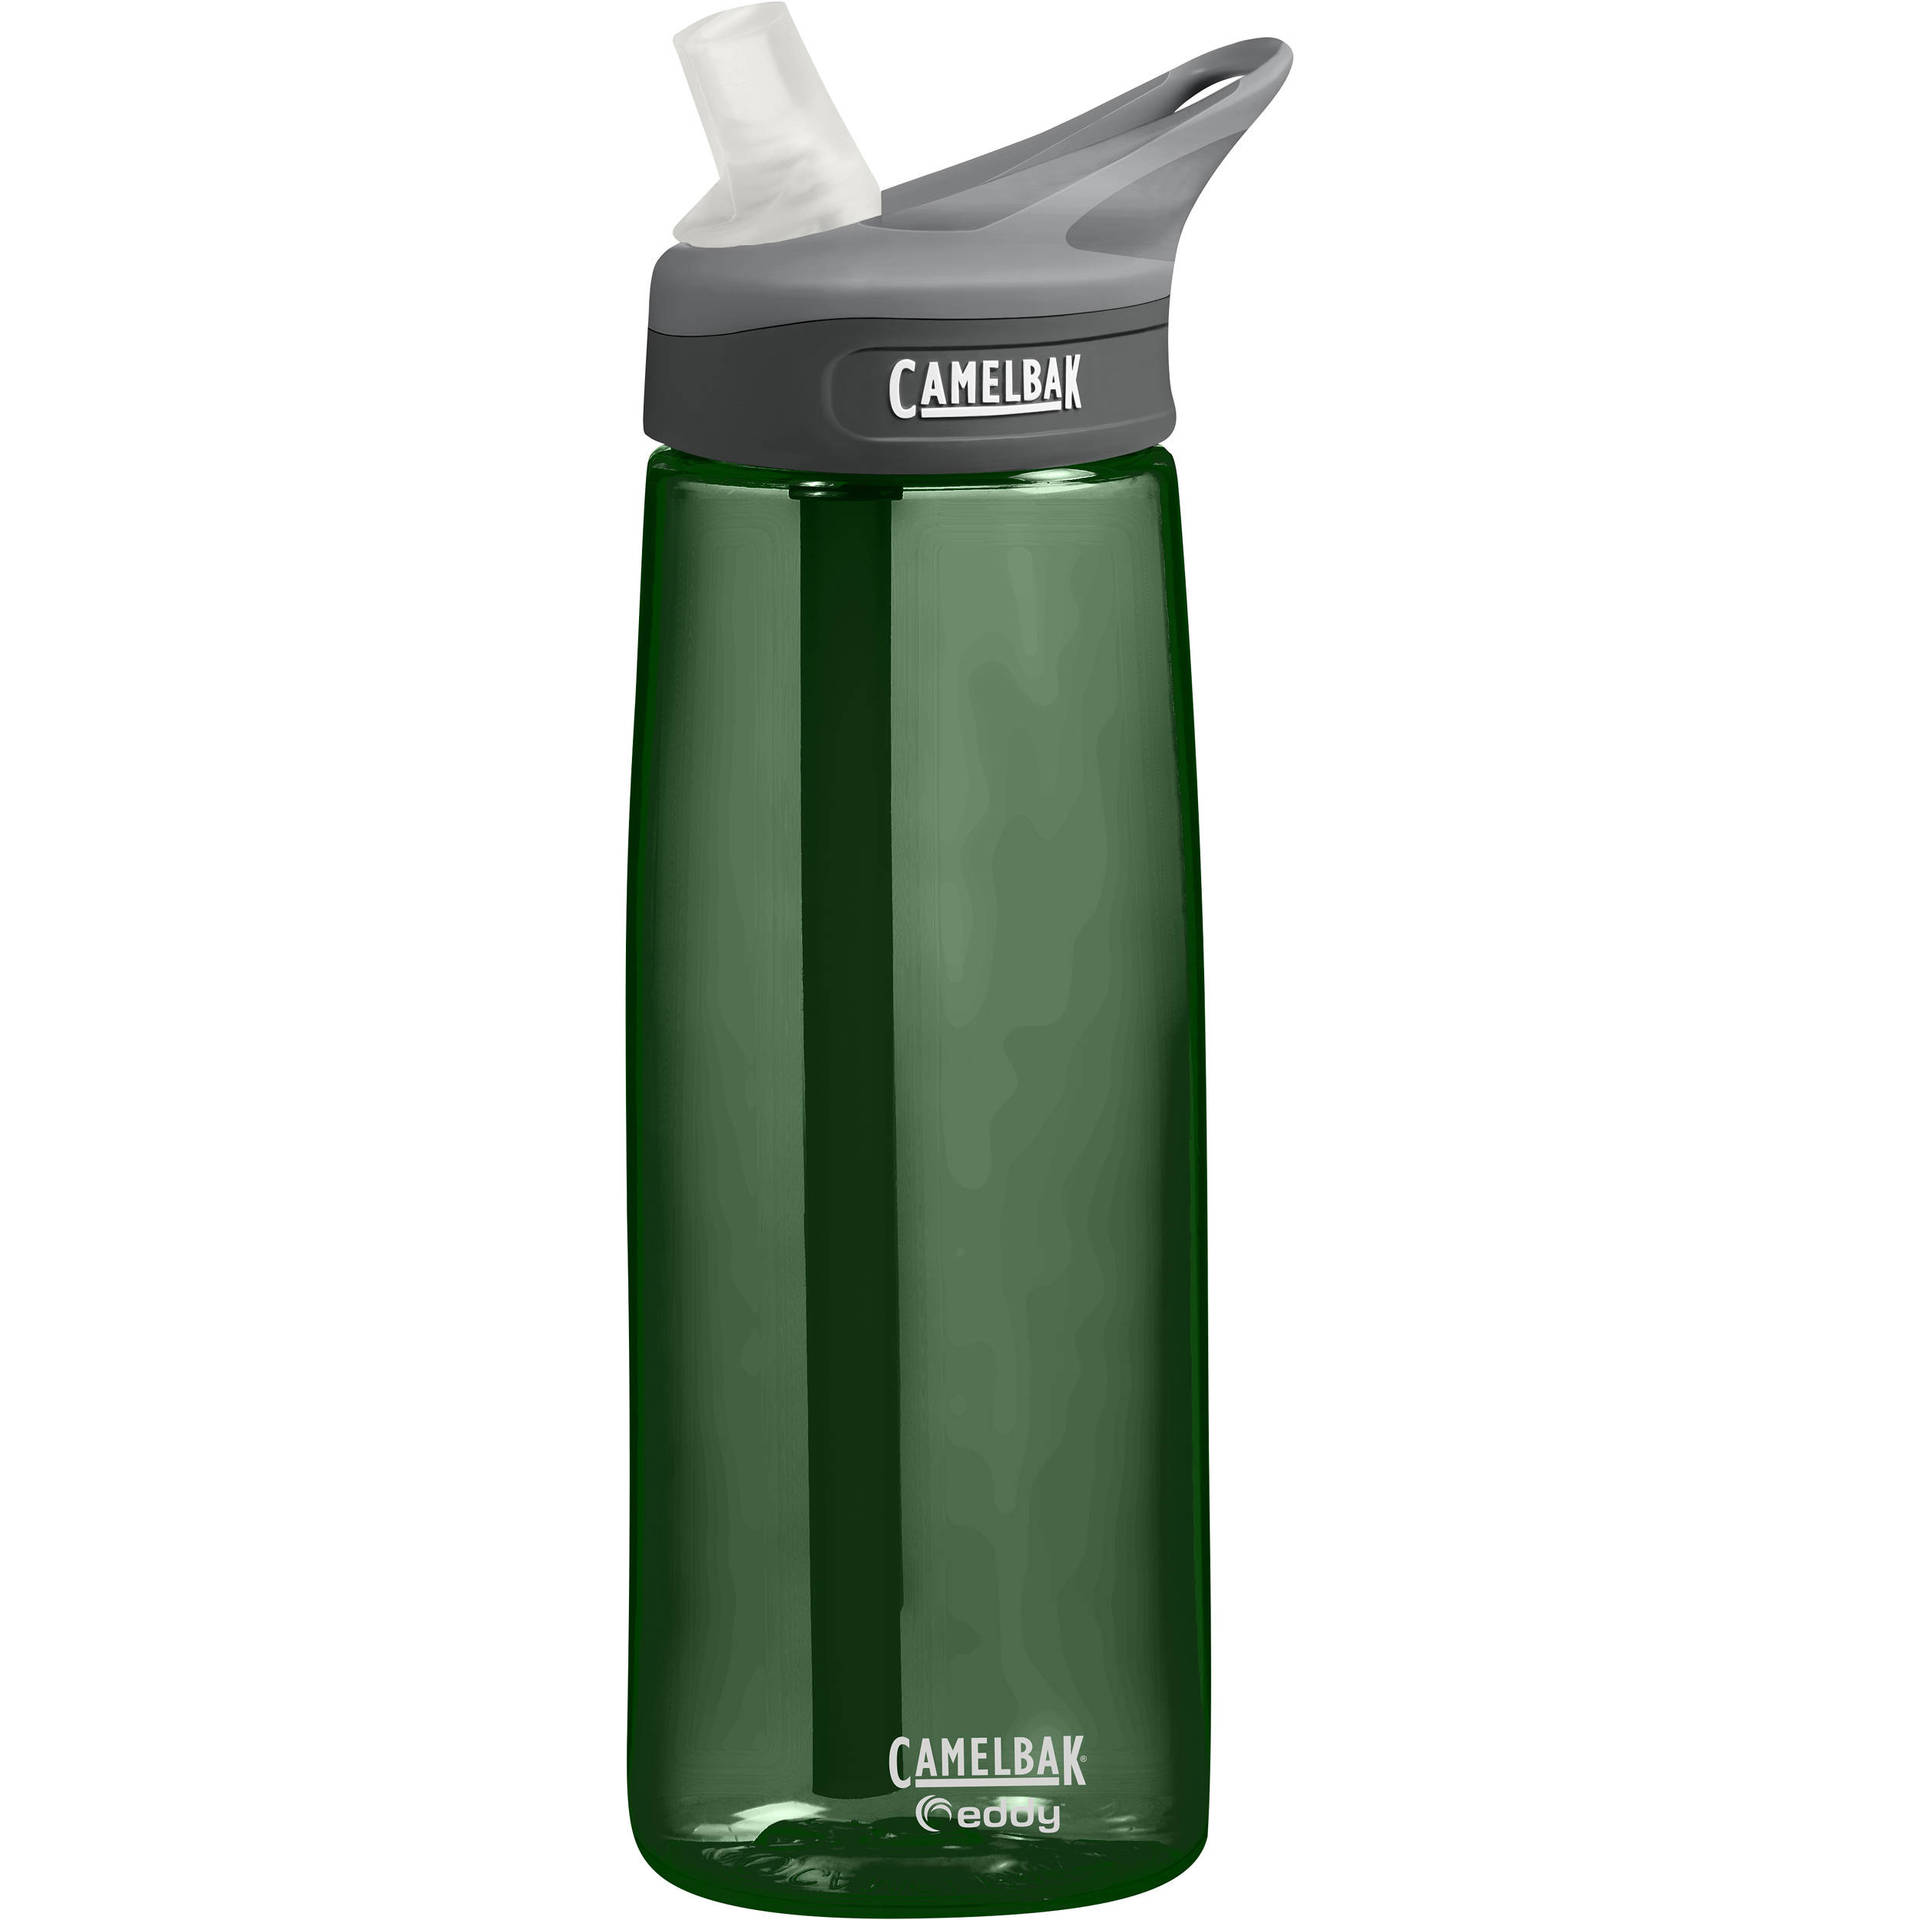 Camelbak Eddy Drink Bottle 750ml, Hunter, One Size